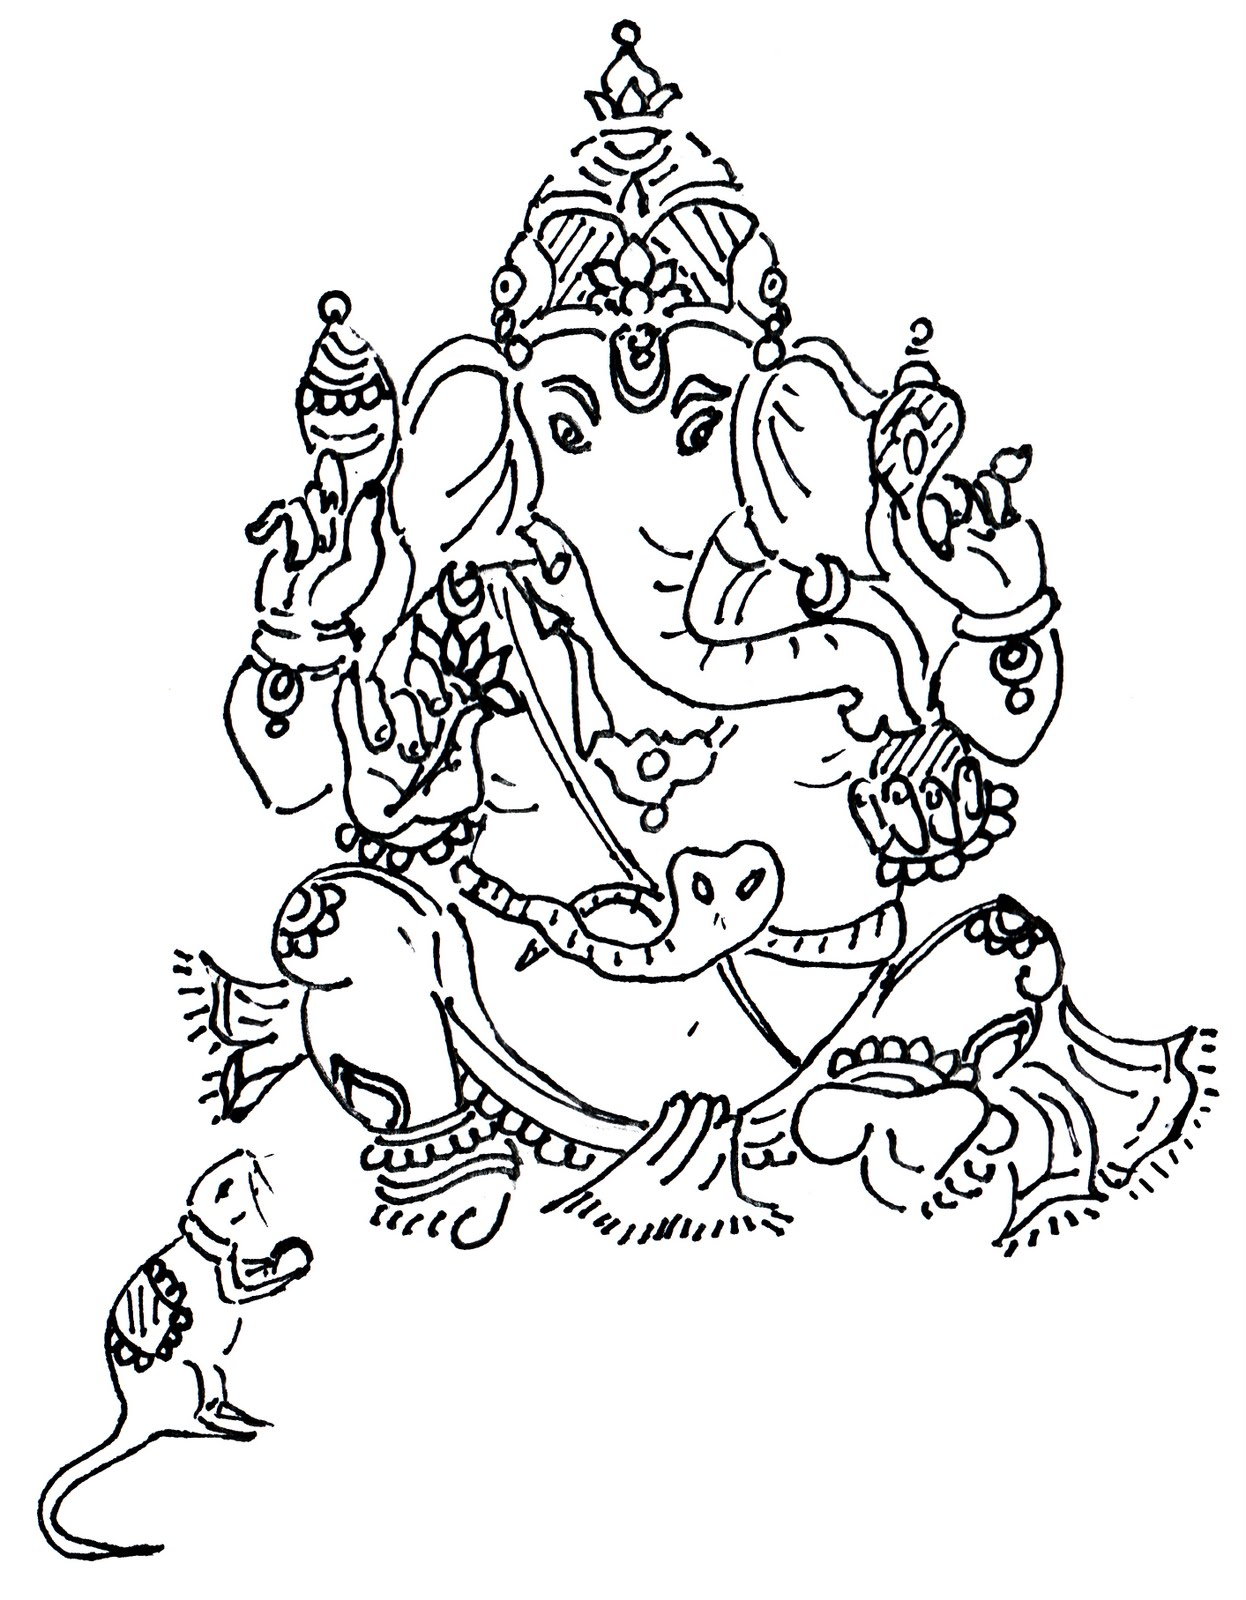 Line Art Ganesh Images : Ganesh images for drawing joy studio design gallery